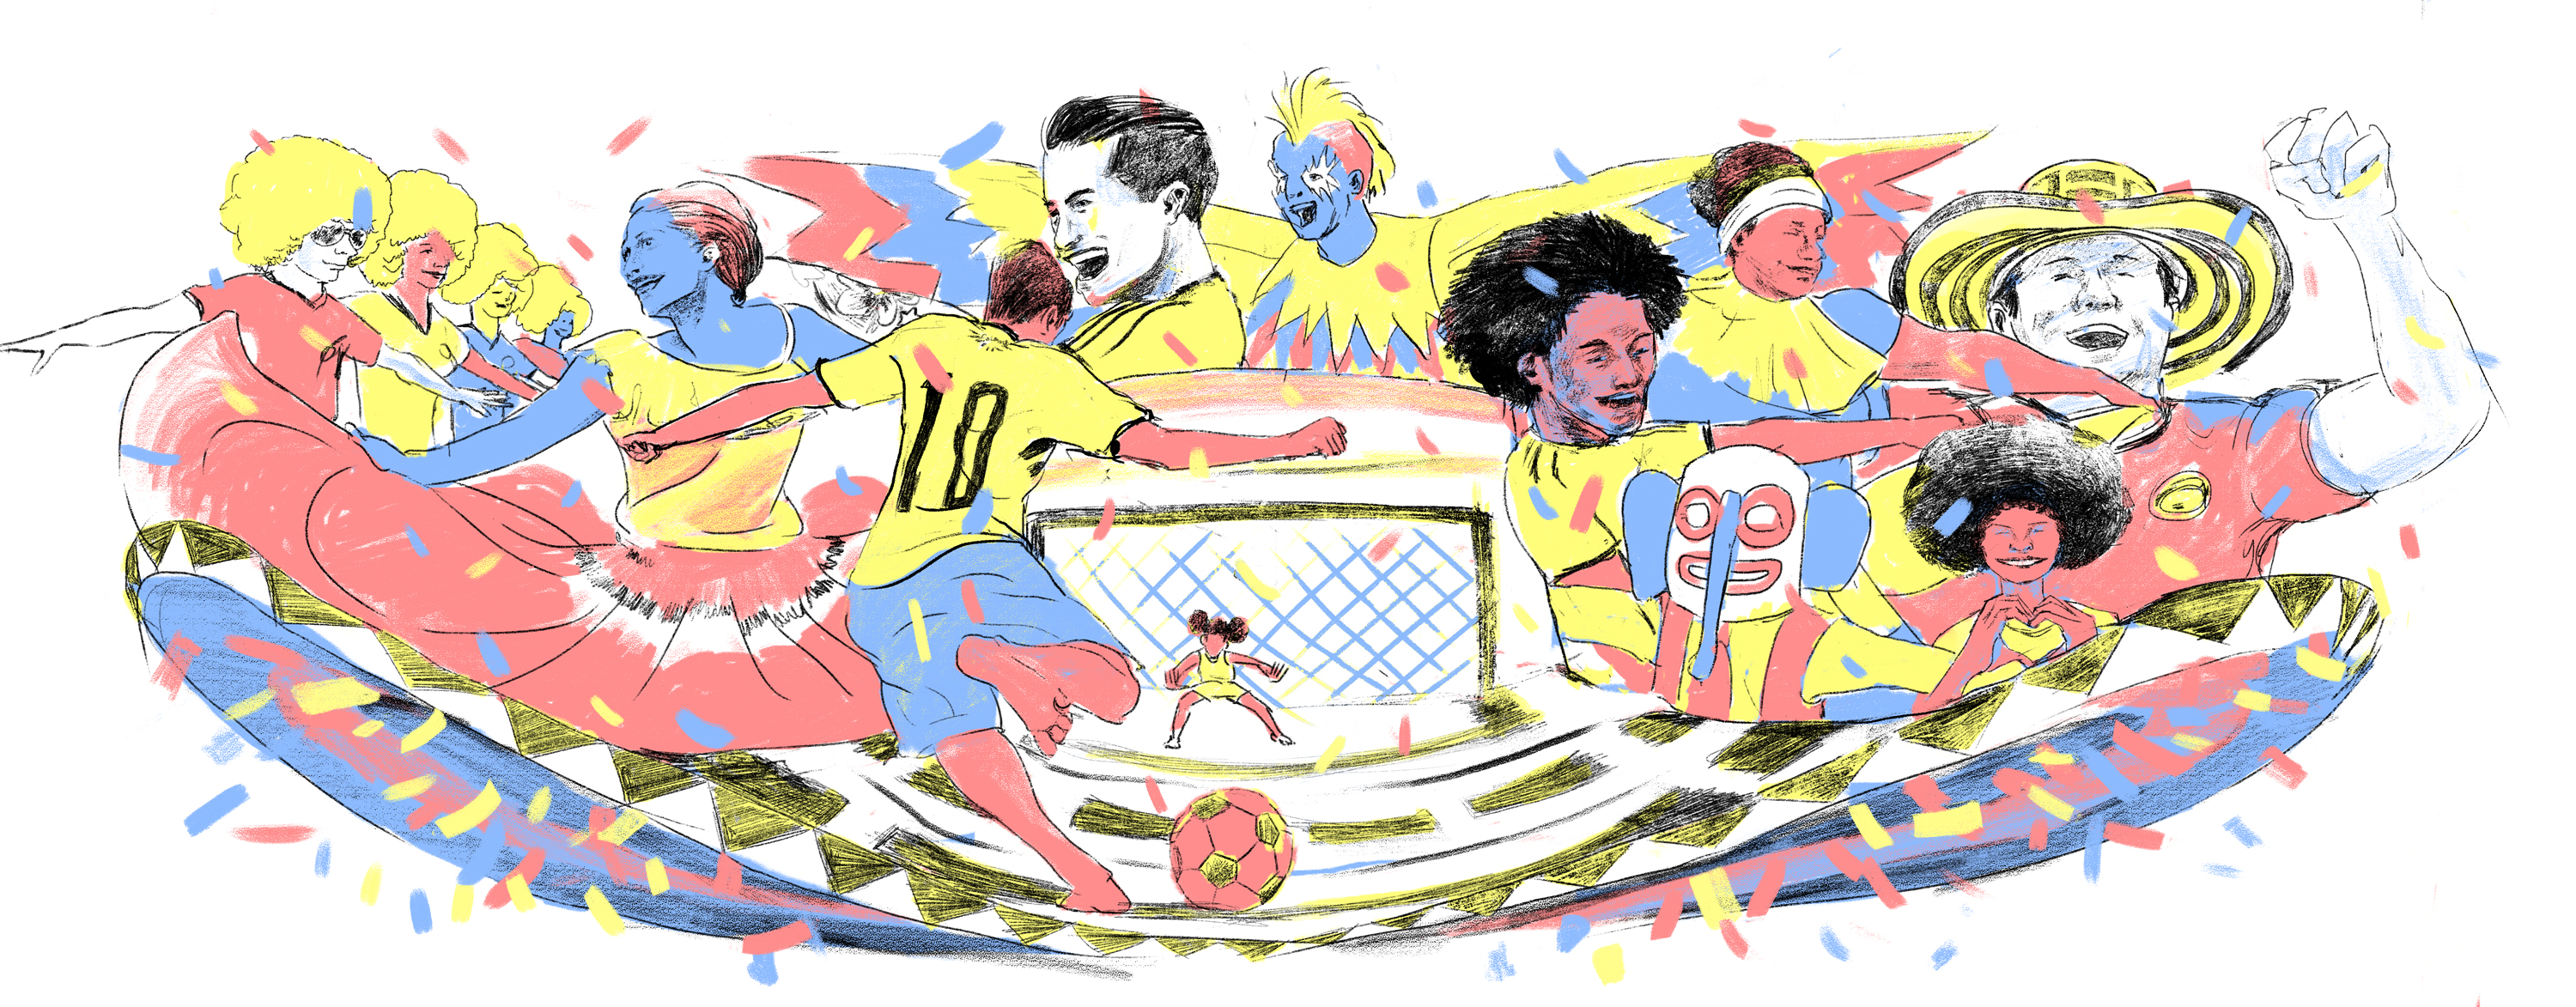 Colombia World Cup Doodle Sketch